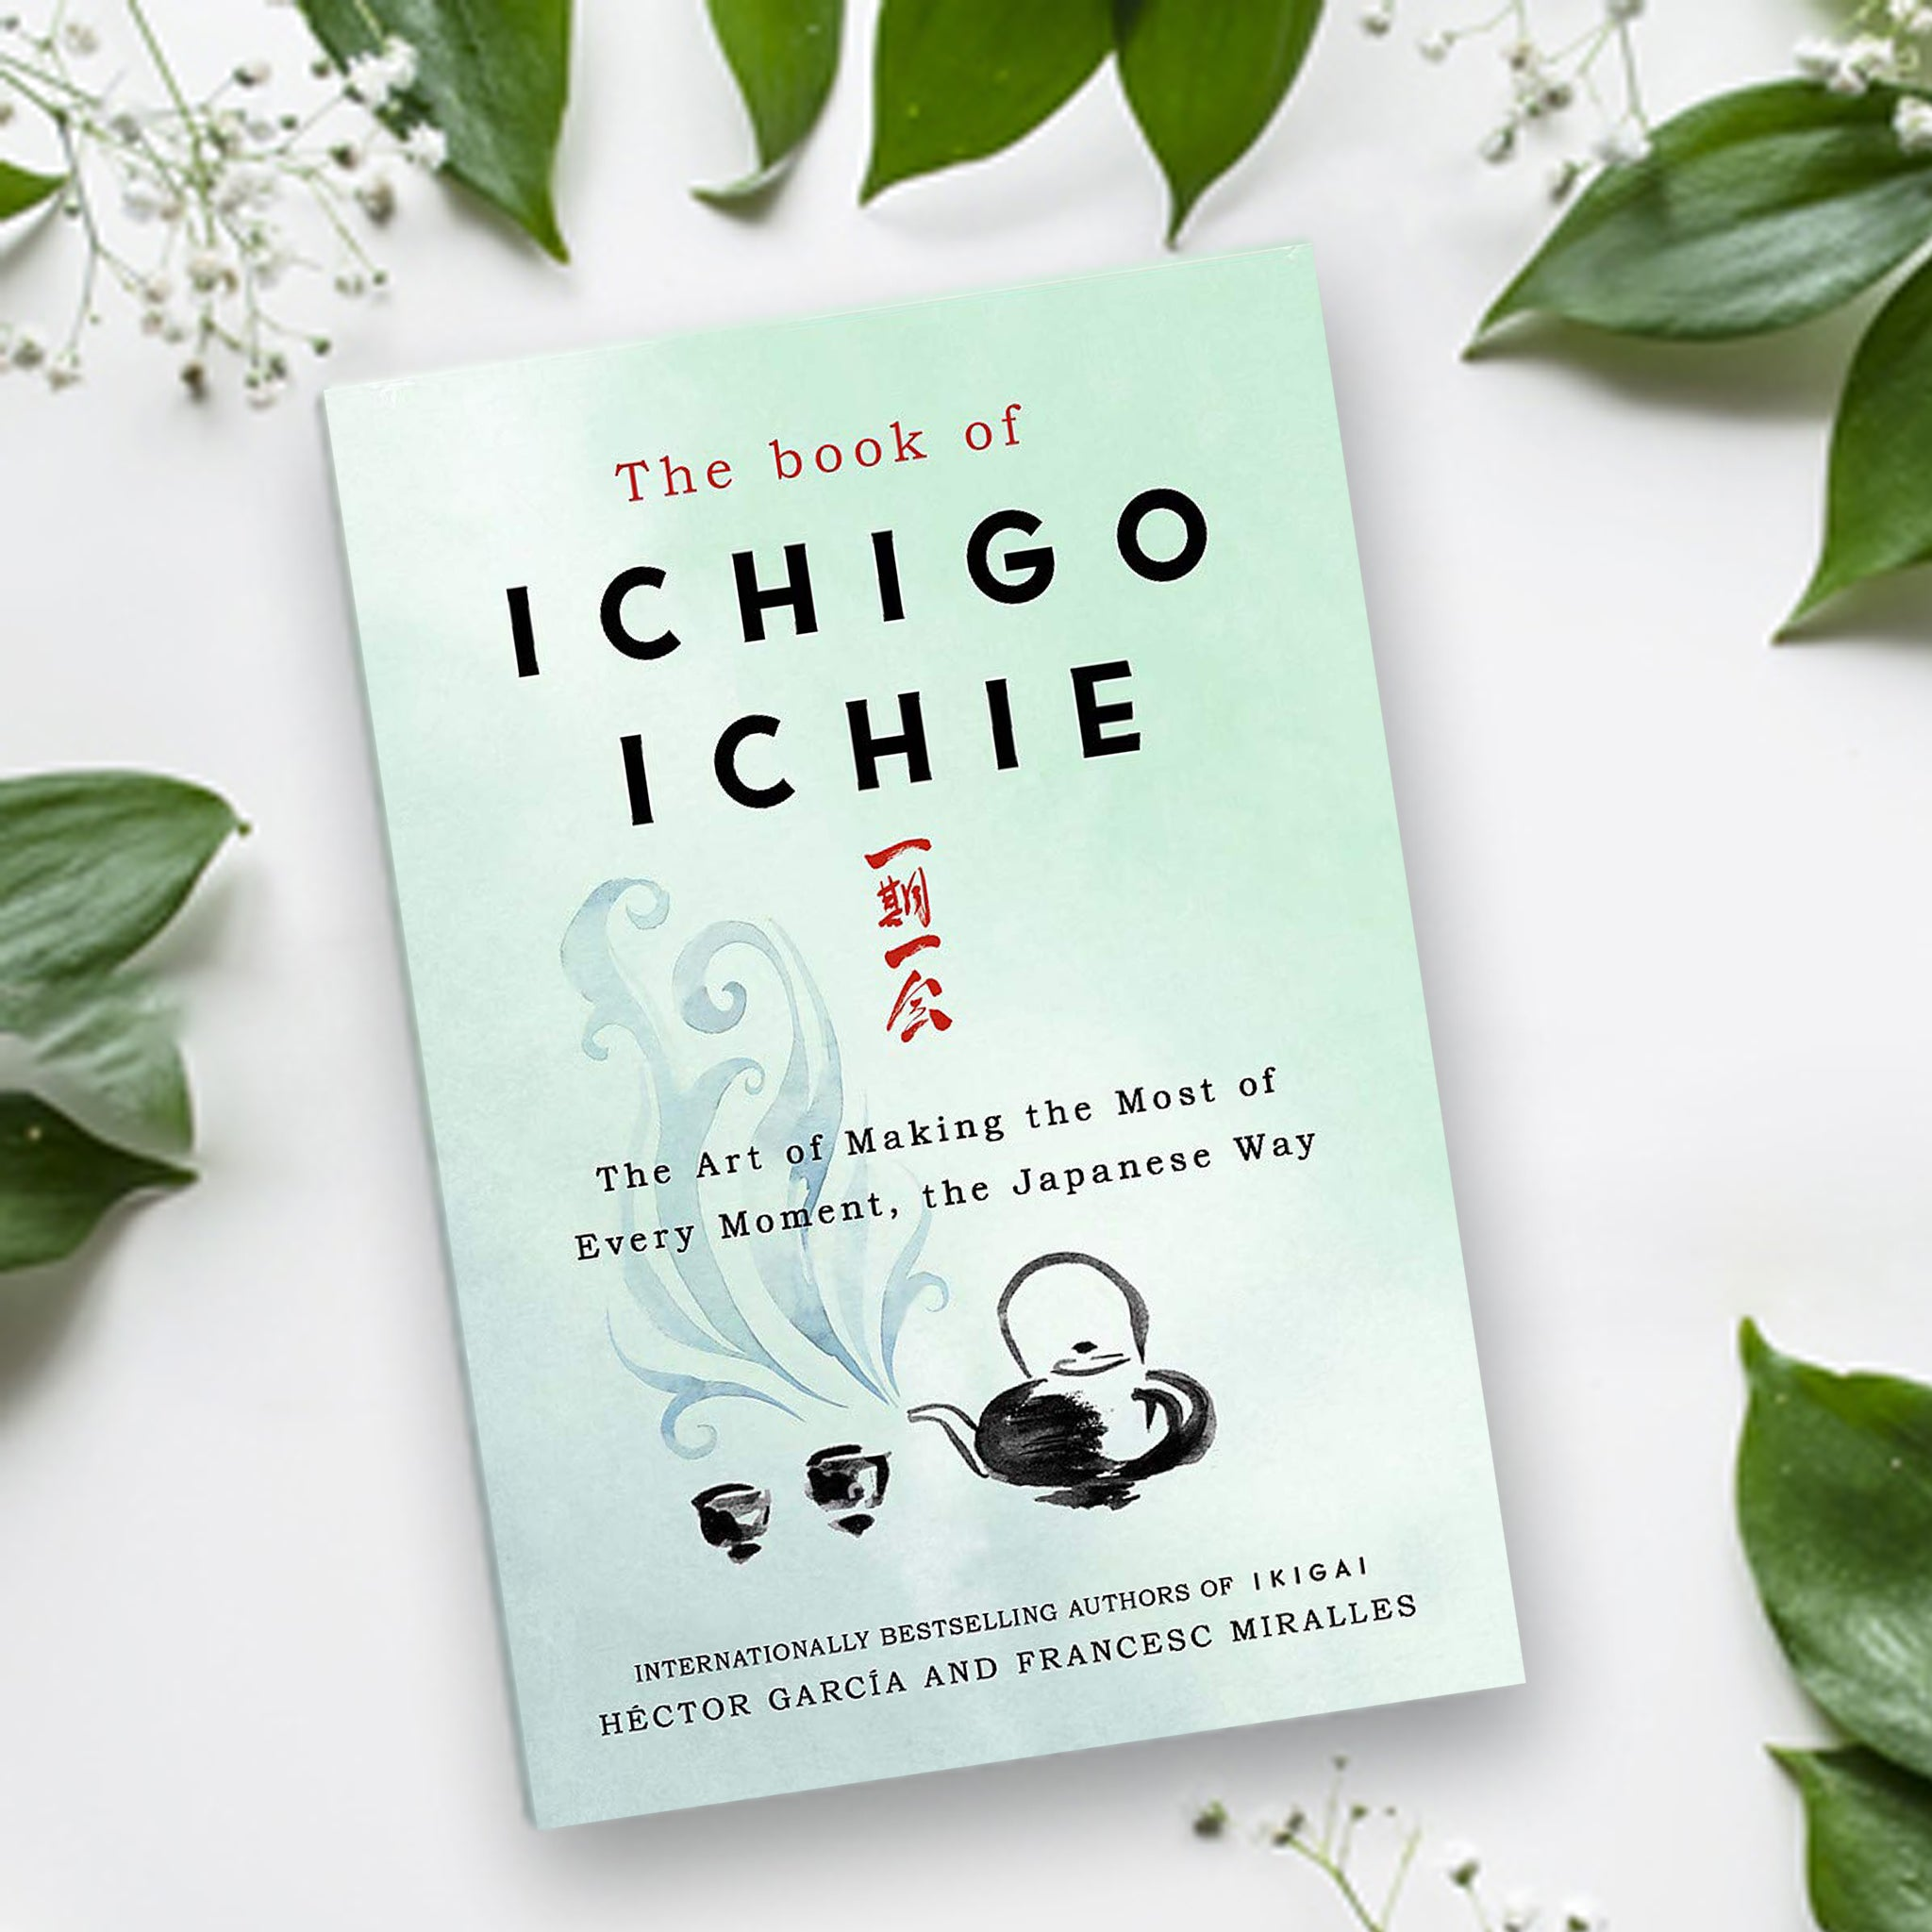 Ichigo Ichie :The Art of Making The Most of Every Moment, The Japanese Way